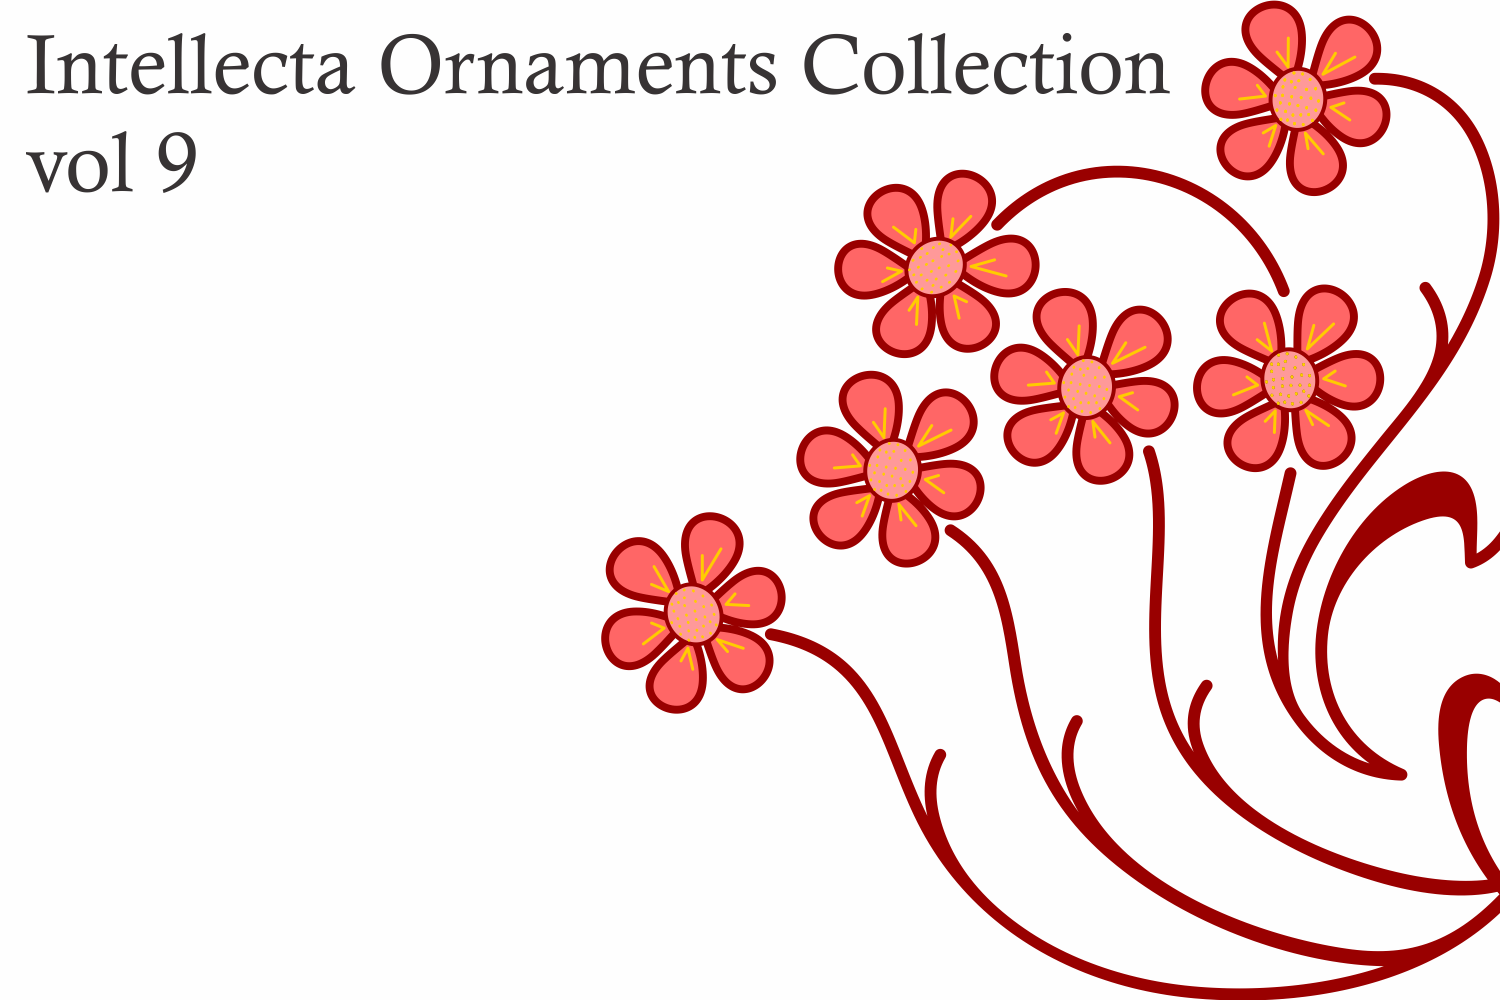 Intellecta Ornaments Collection 9 example image 4